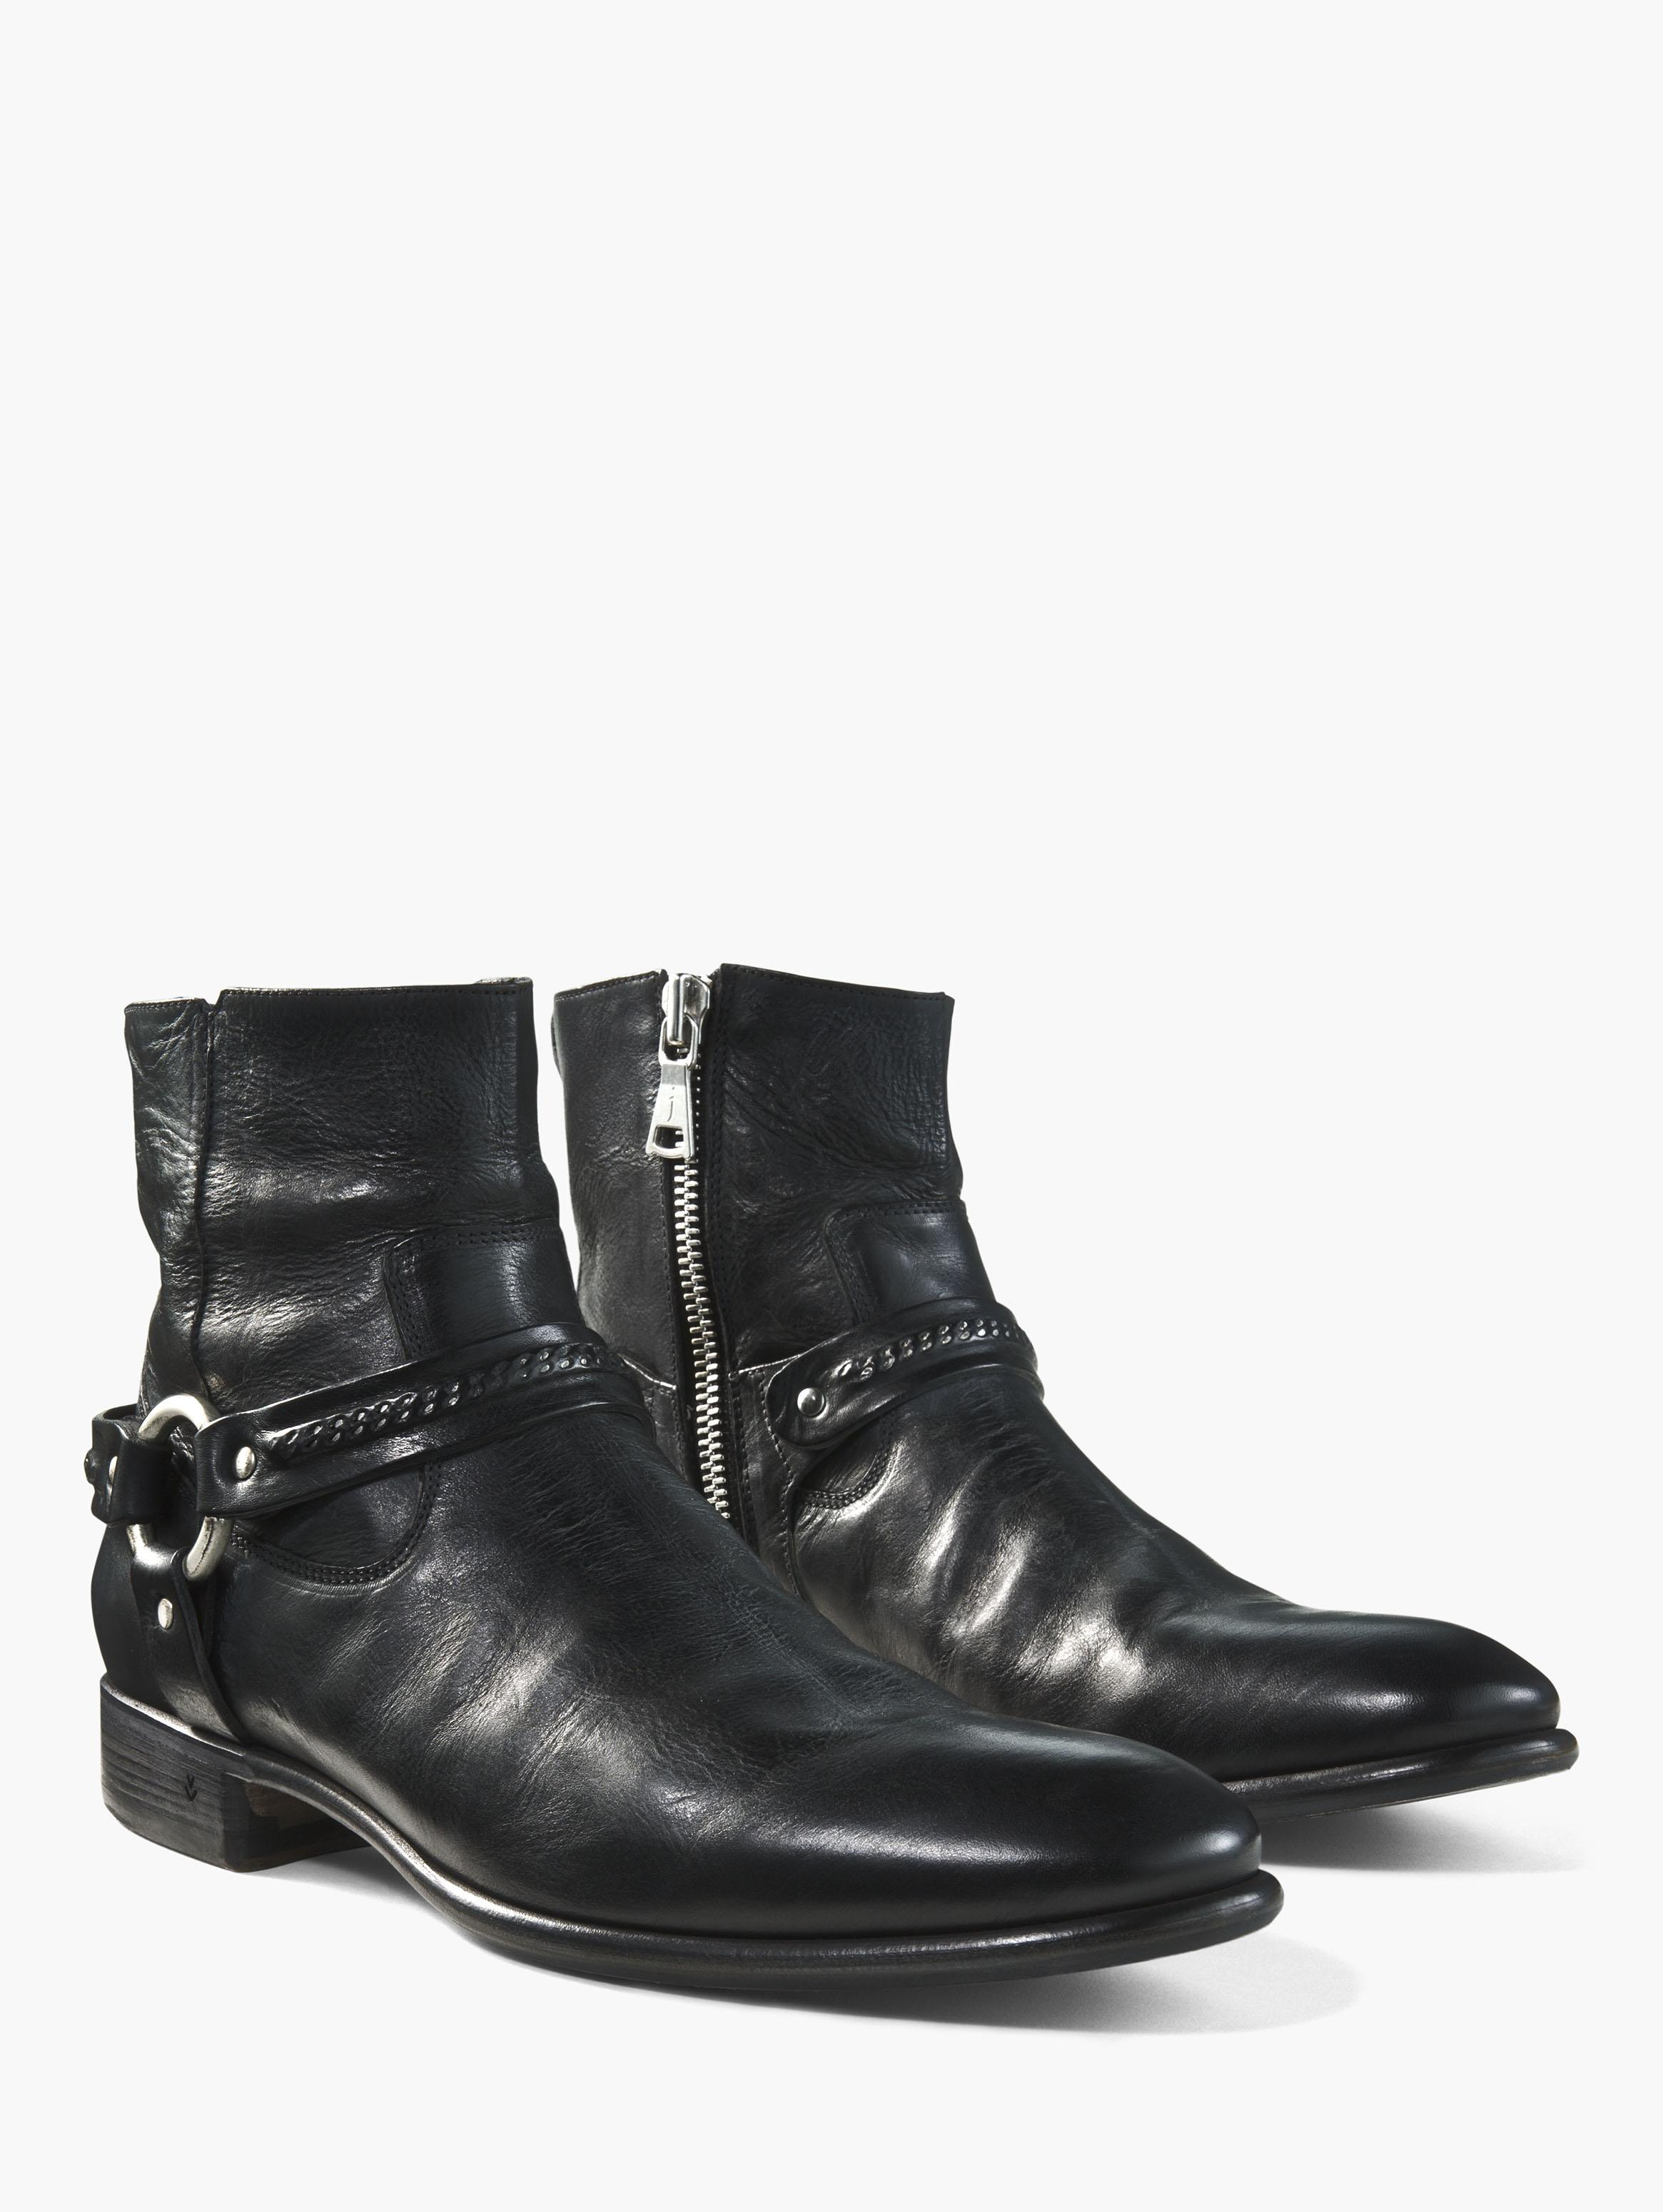 Shopping Men s Boots John Varvatos Eldridge Chelsea Men TwineOnline shoe store